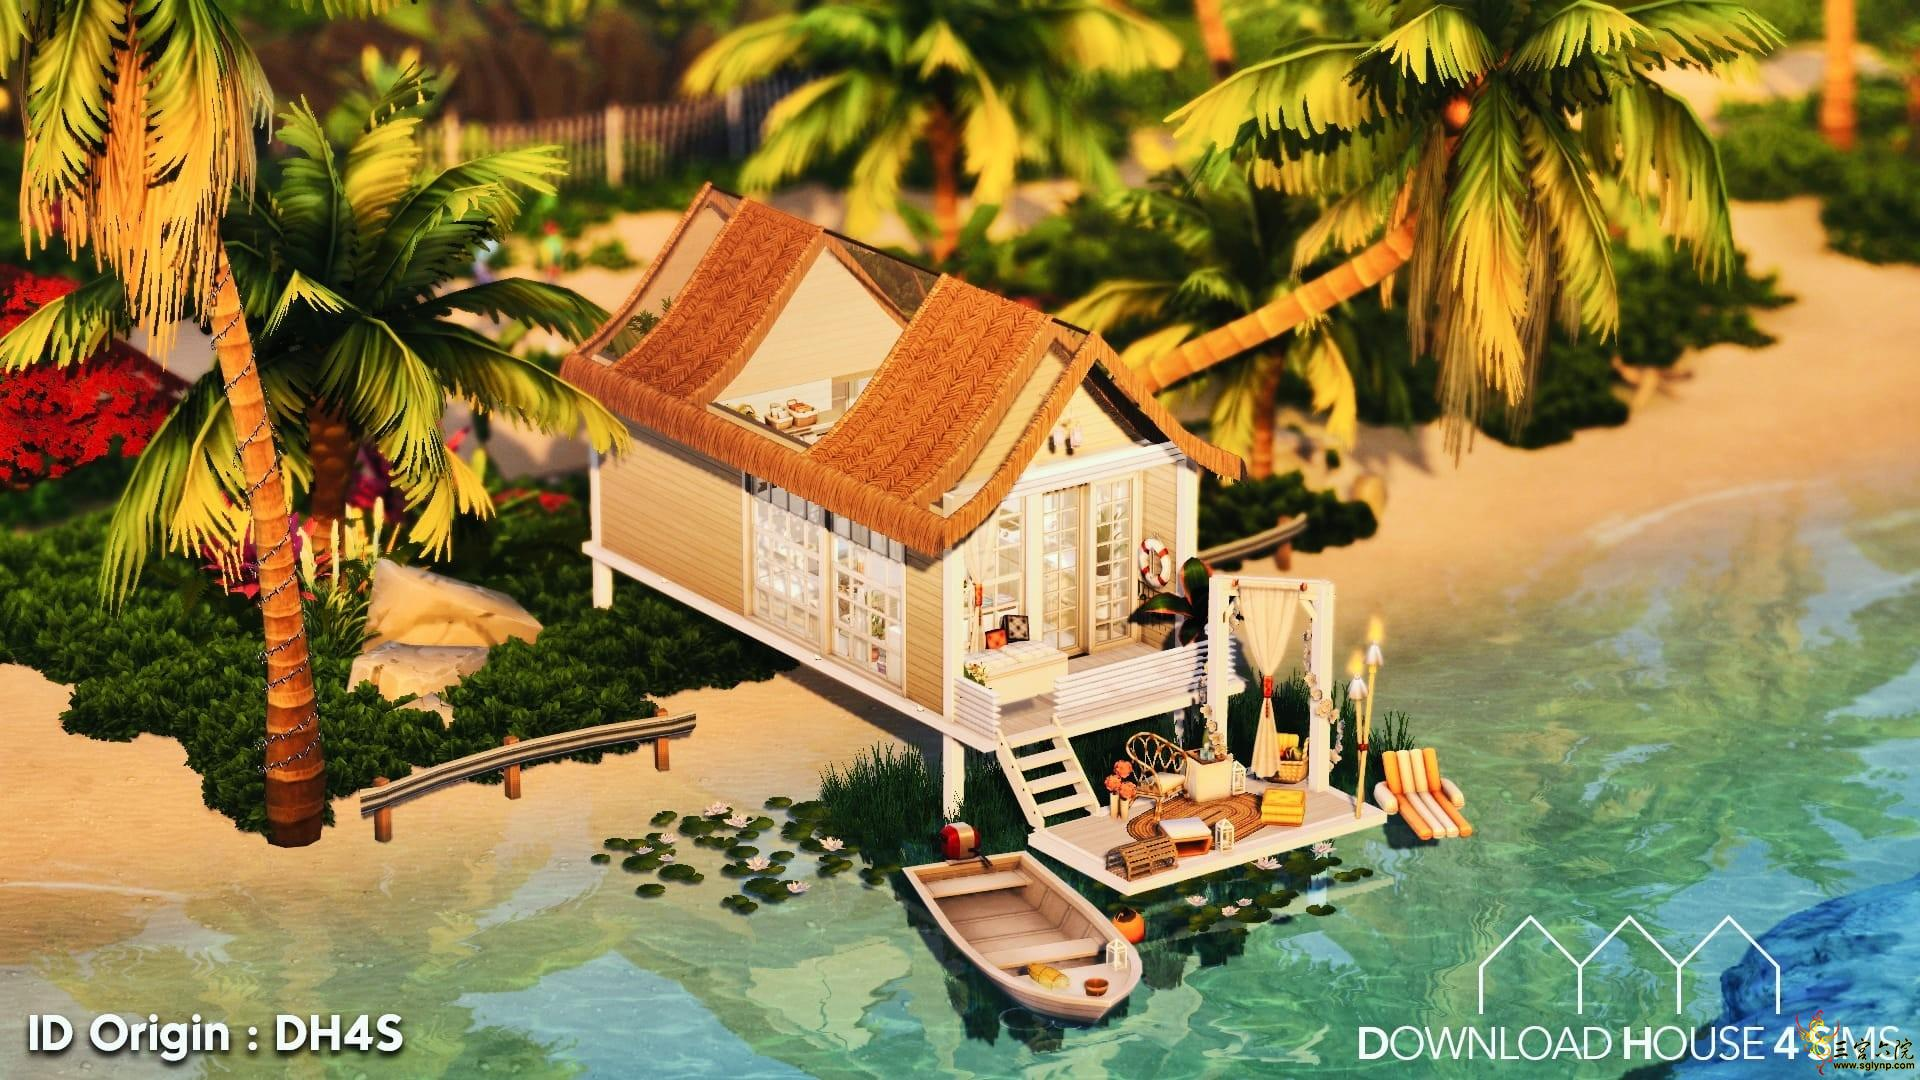 e04edcf0883154da745e0f818af00788_Download-House-4-sims-Tiny-beach-cabin-house-2.jpg